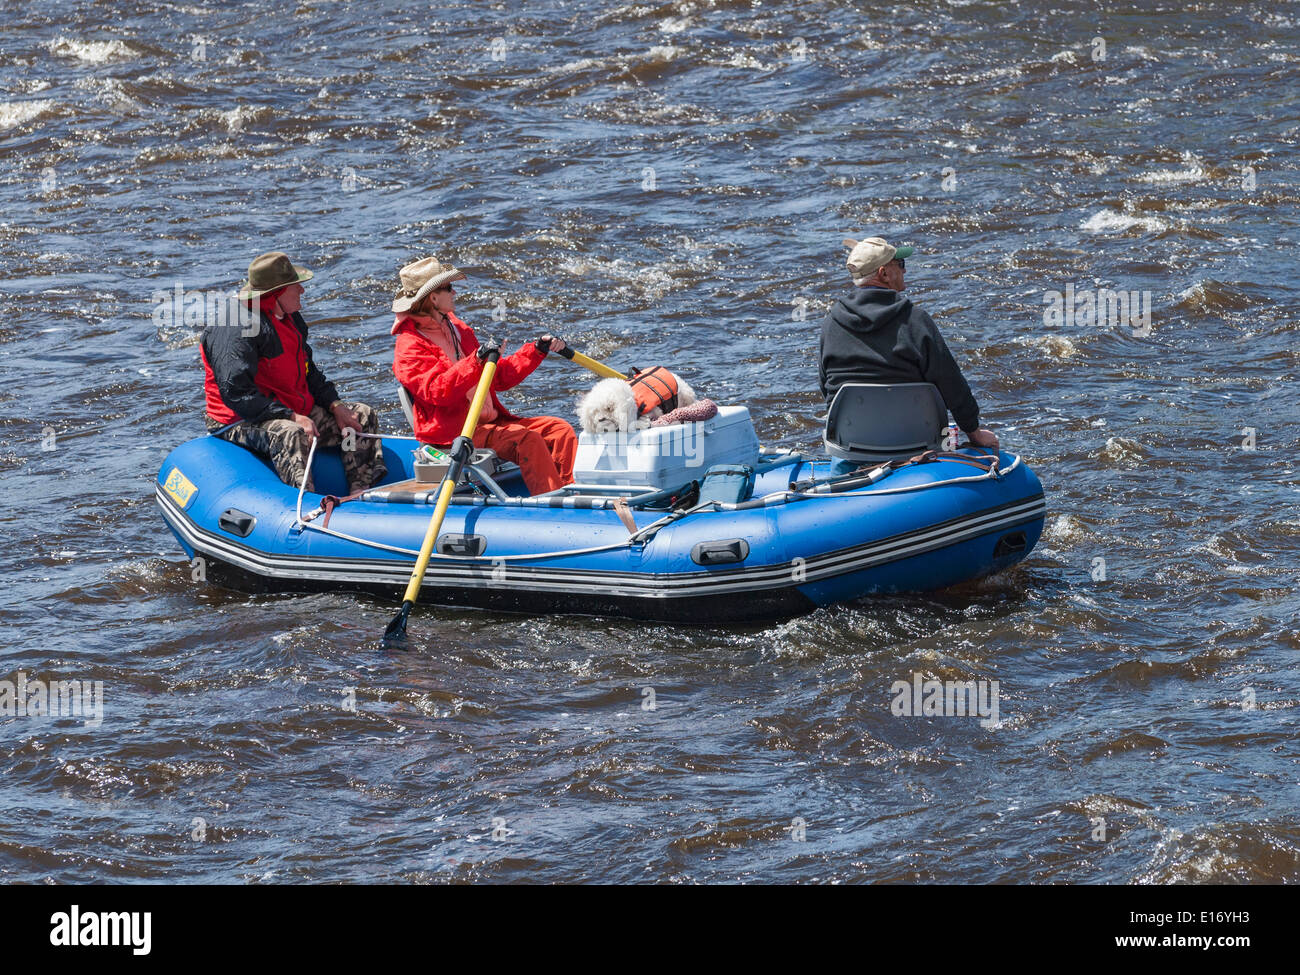 Montana, Big Hole River, inflatable oar boat, three adults with dog - Stock Image